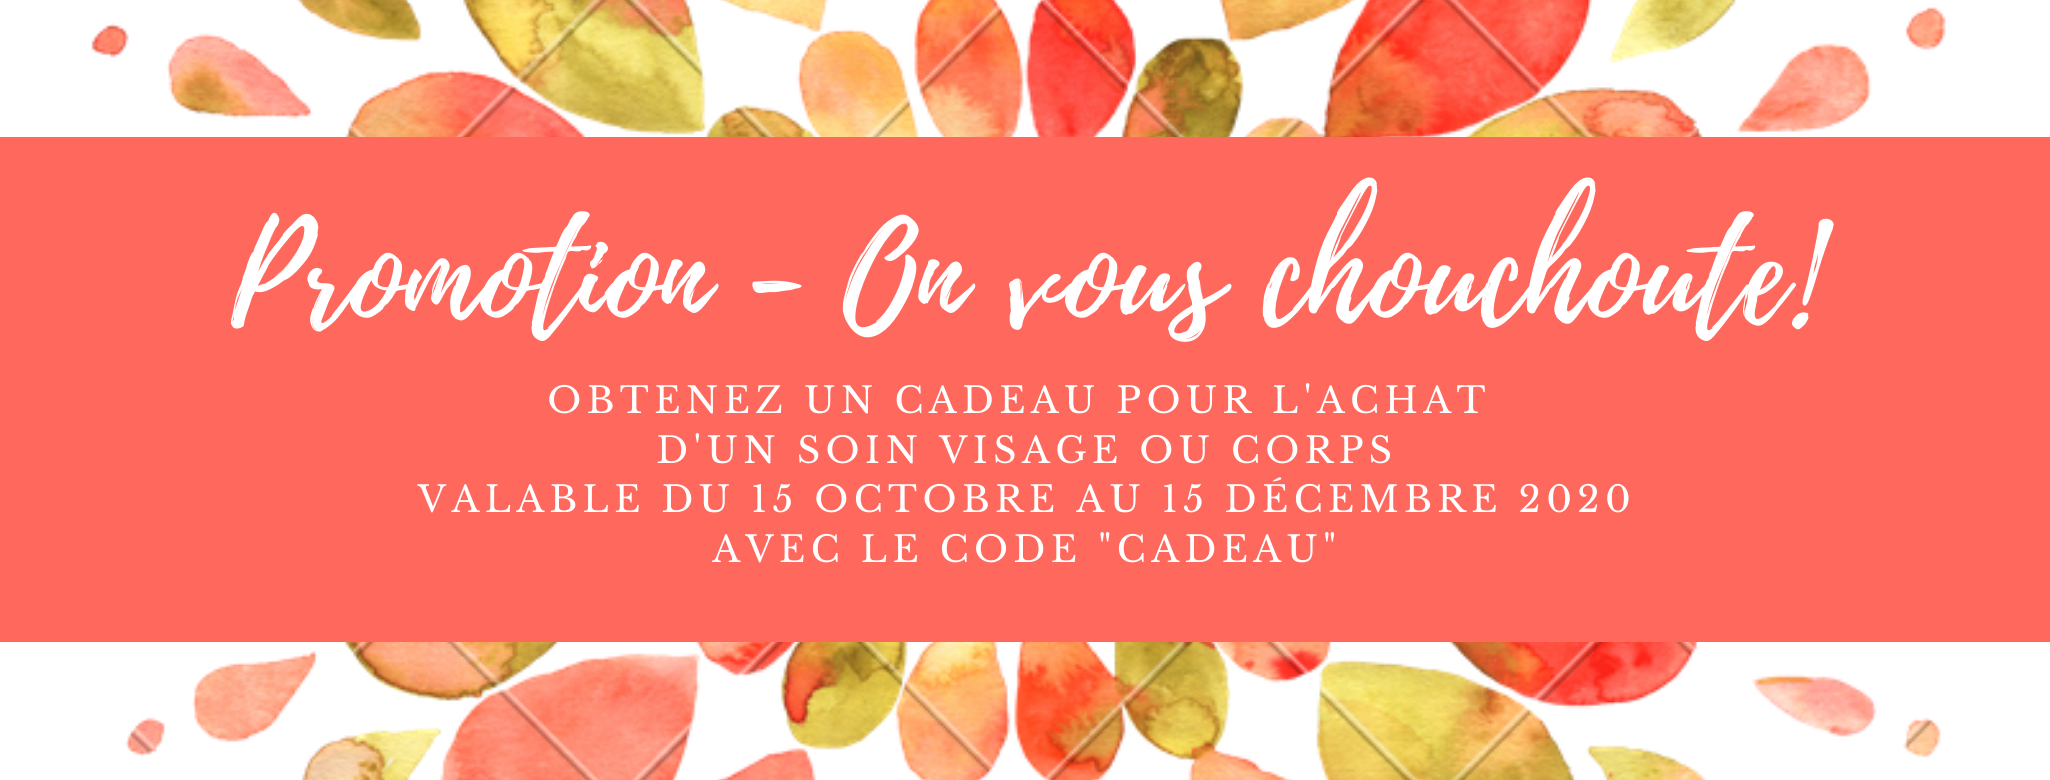 Promotion - On vous chouchoute!